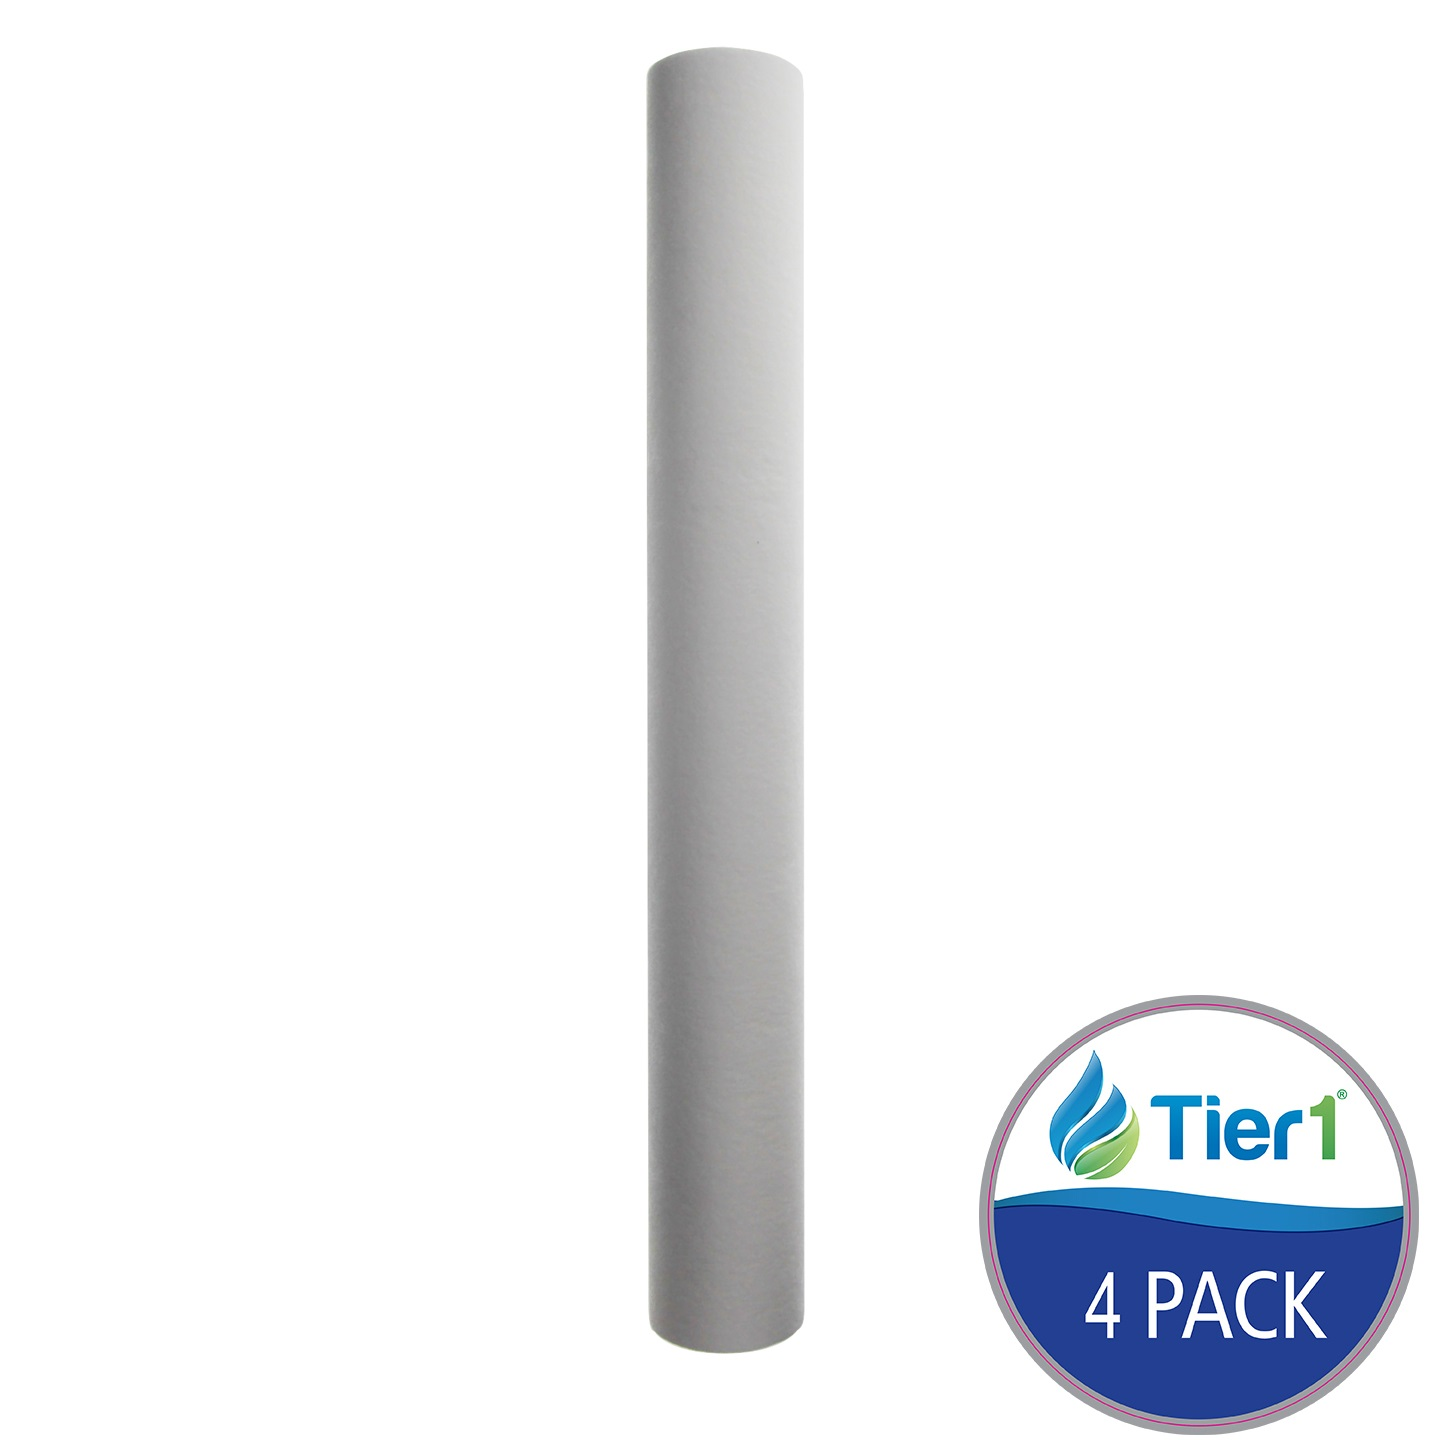 20 X 2.5 Spun Wound Polypropylene Replacement Filter by Tier1 (10 micron) (4-Pack) TIER1_P10_20_4_PACK